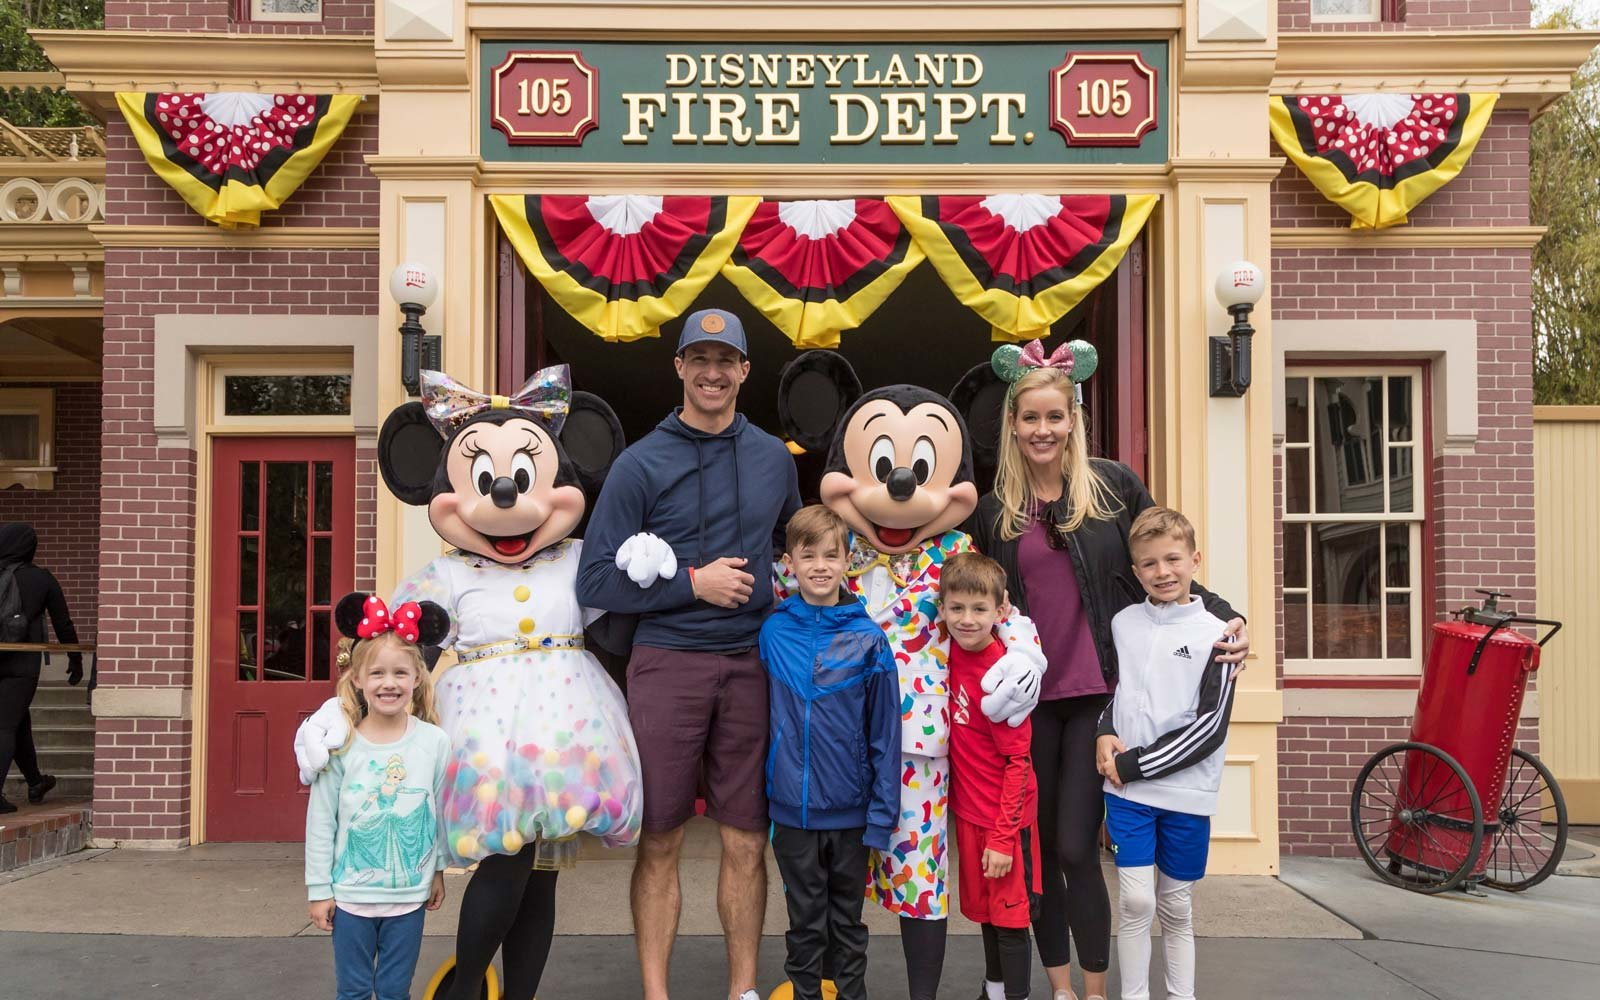 Drew Brees brings his family to Disneyland